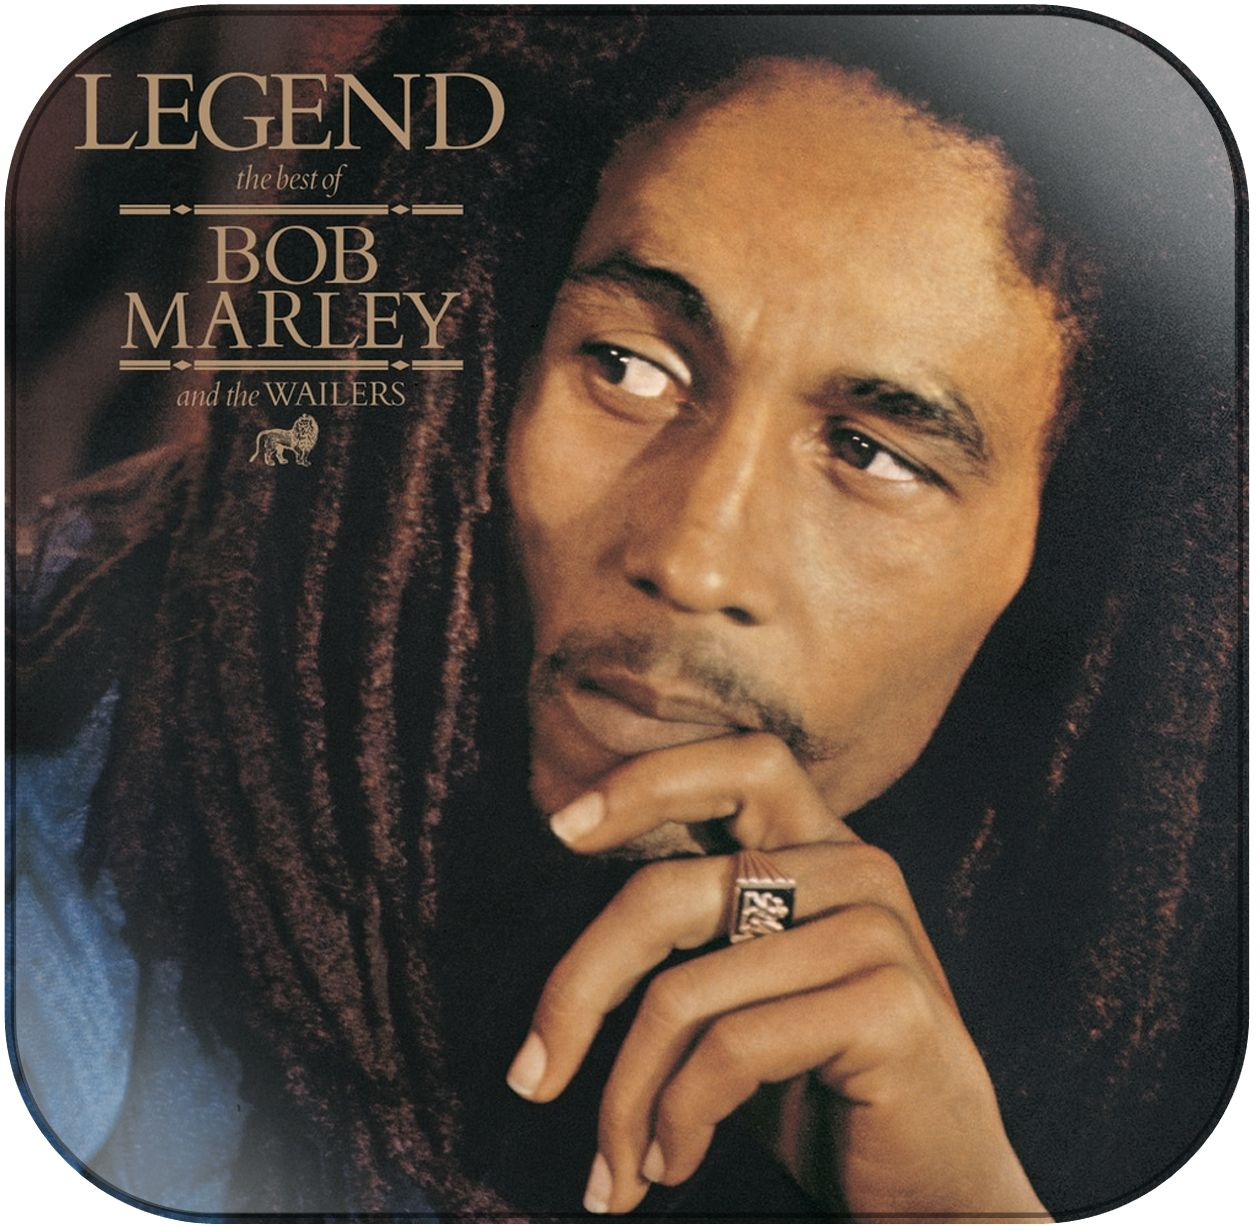 8d16af25e61 Bob Marley and the Wailers Legend Album Cover Sticker in 2019 ...